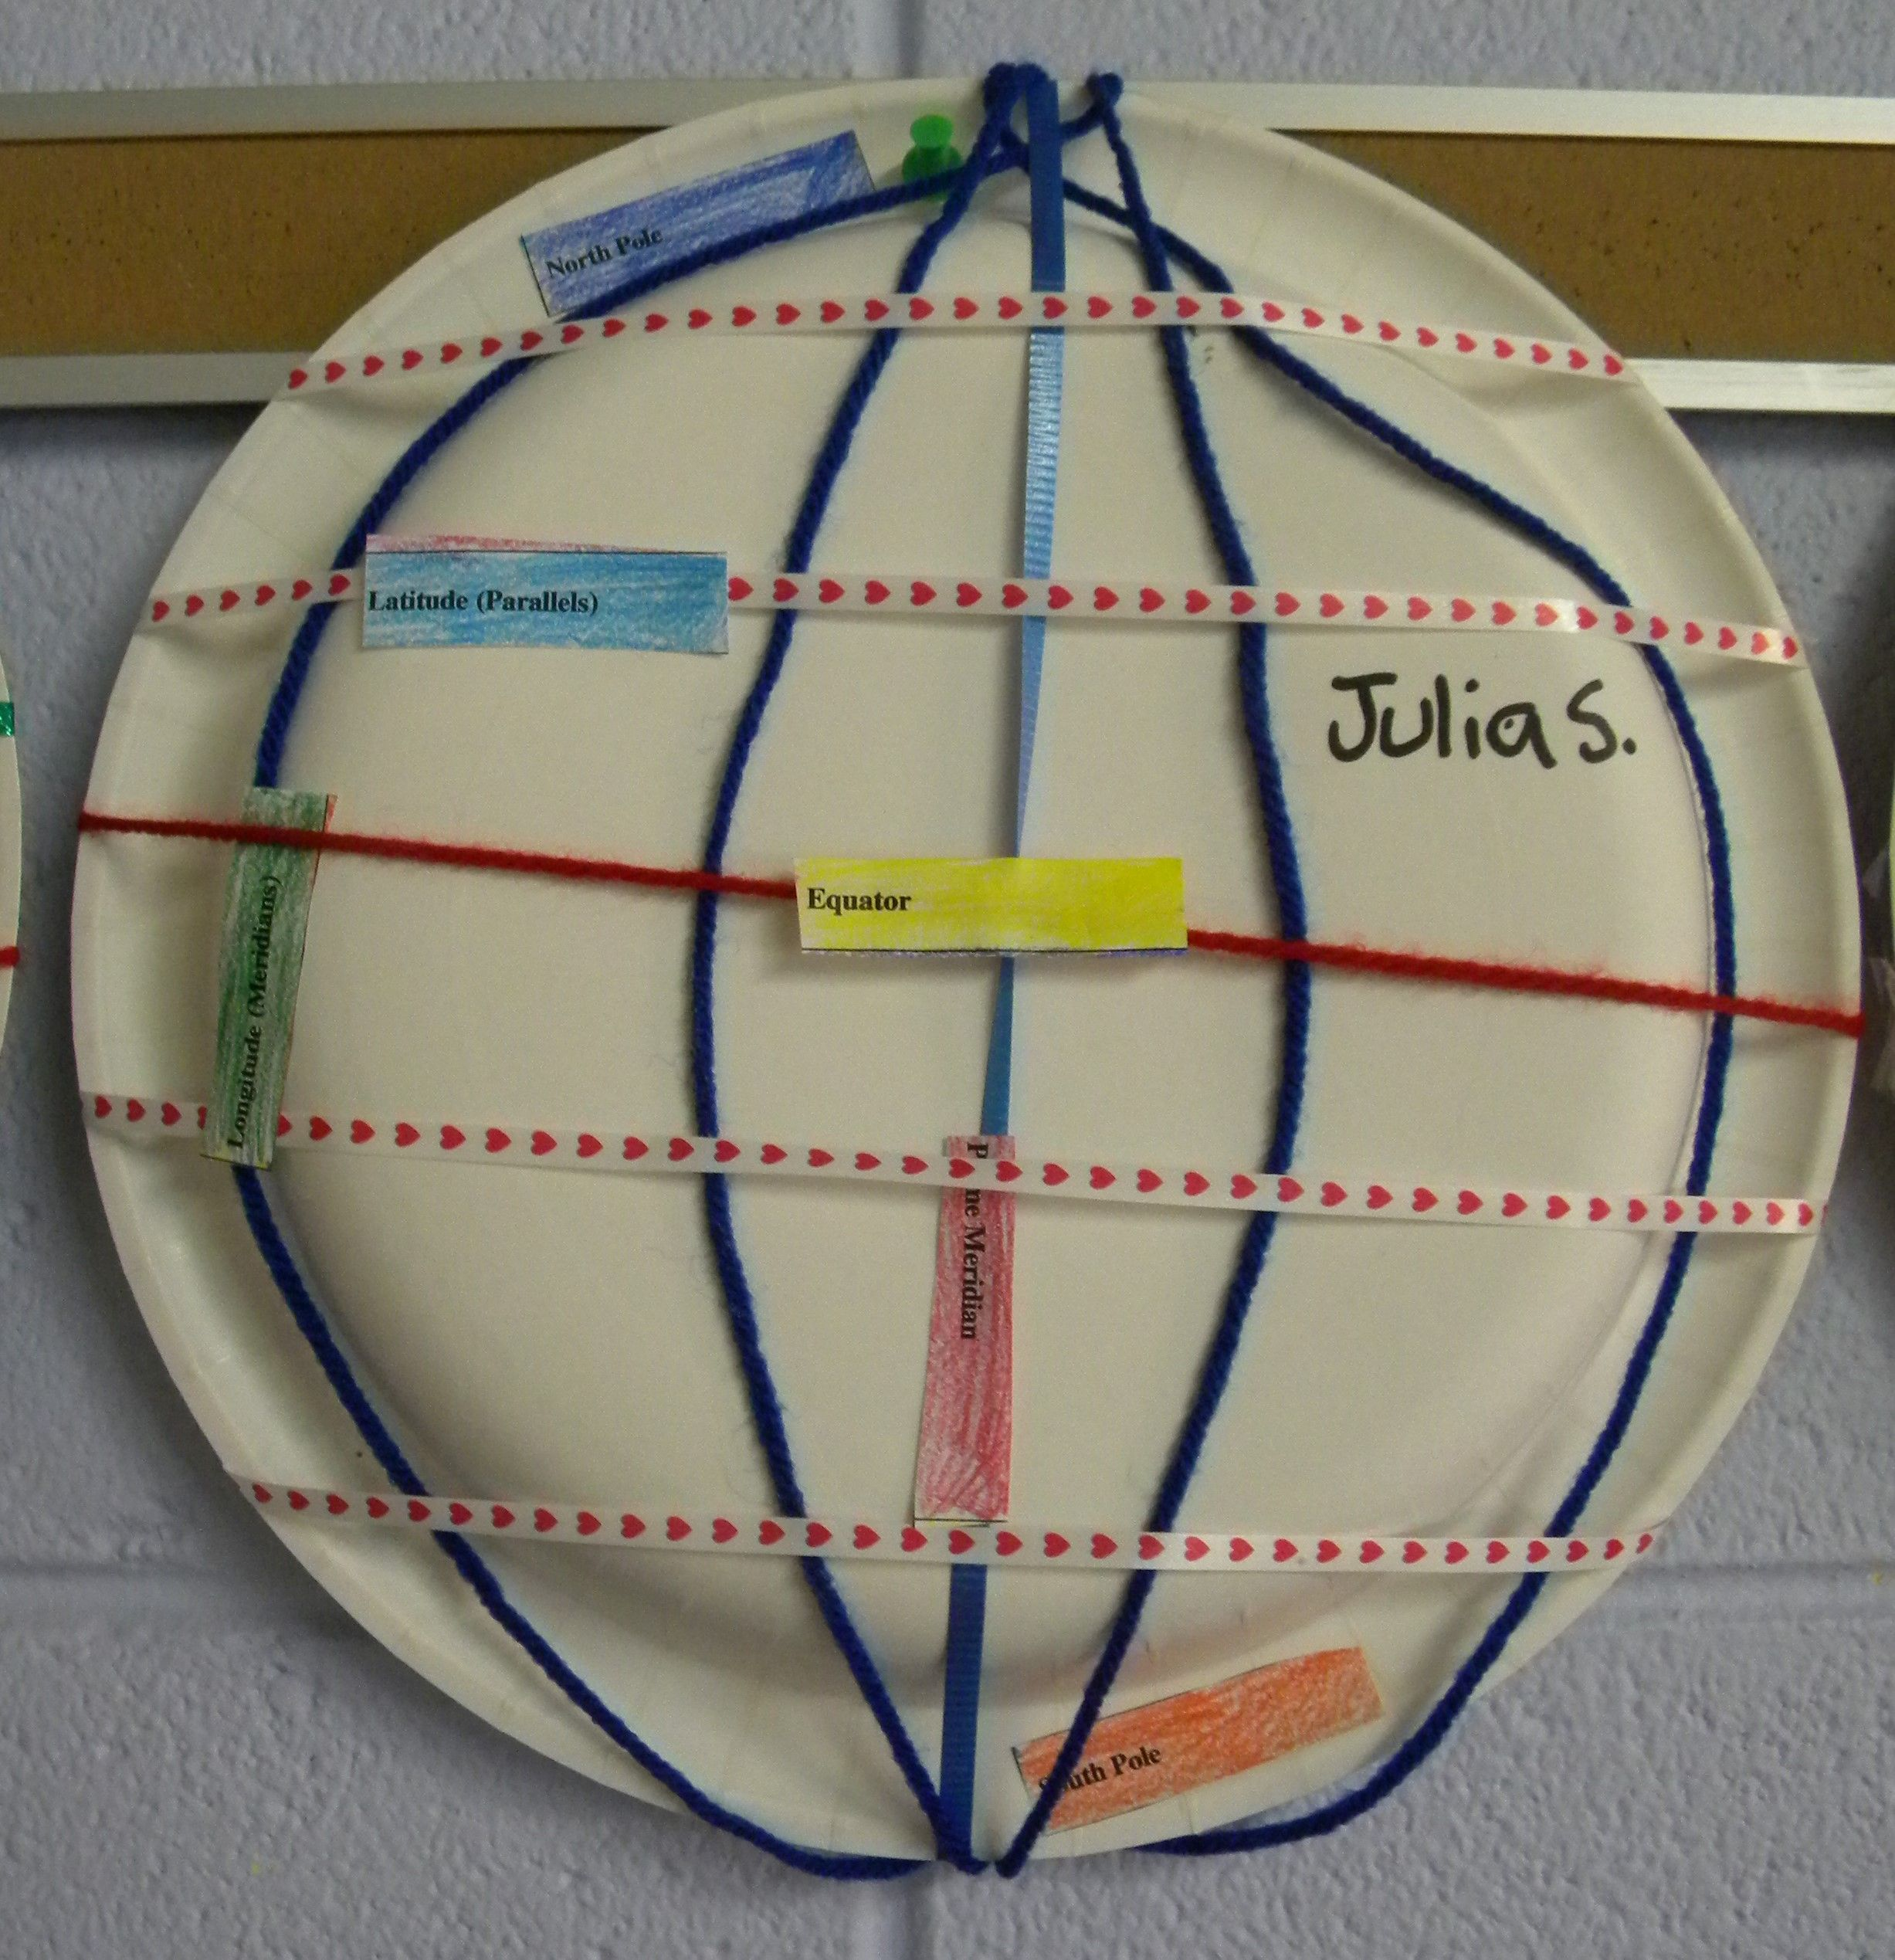 medium resolution of Project-based assessment--demonstrating latitude